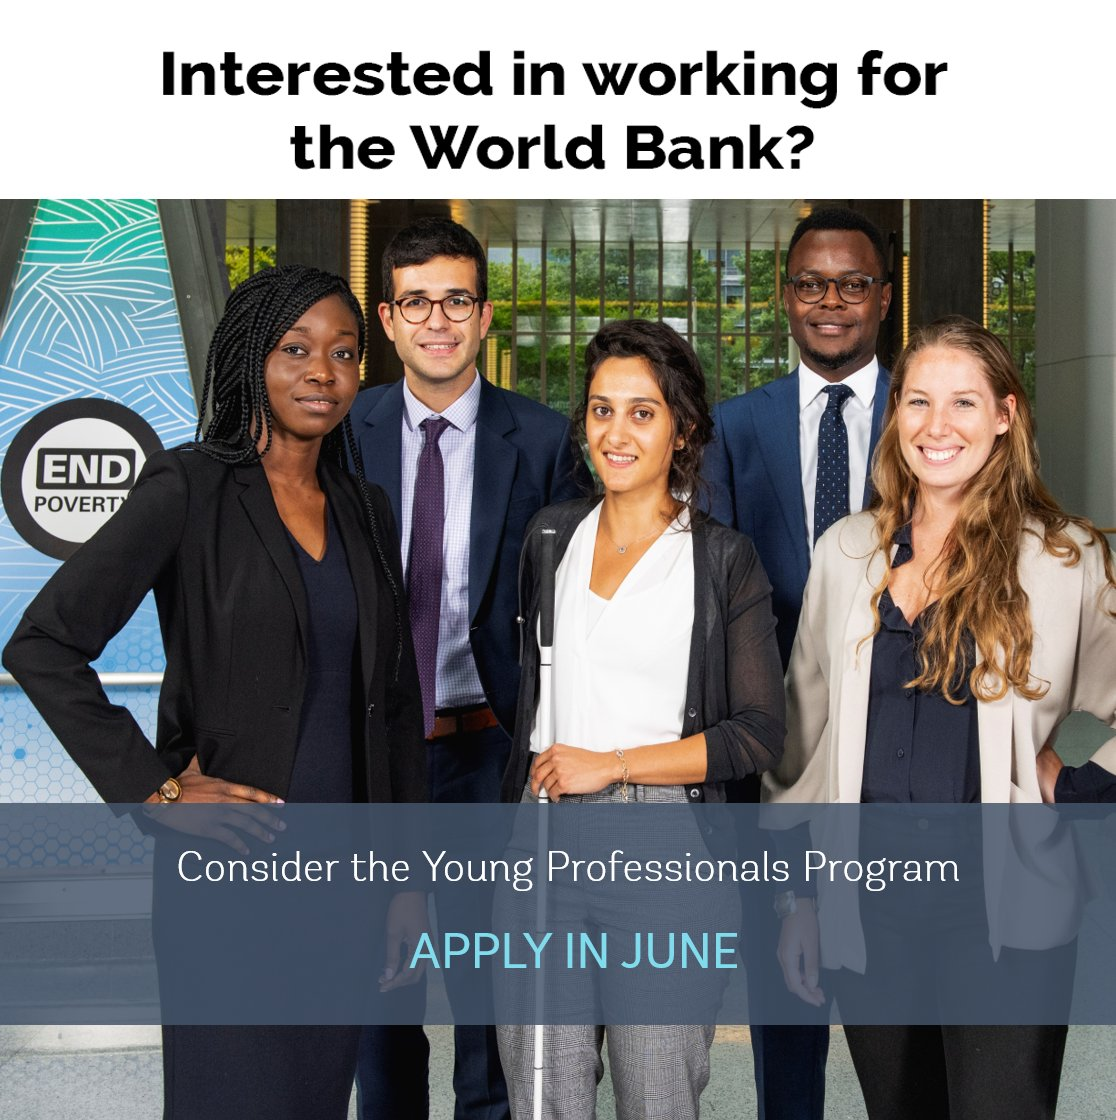 Join our mission to #endpoverty. The Young Professionals Program @WorldBank is actively seeking to hire staff with disabilities, and improving accessibility, services, and inclusion. #IDPD #IDPwD wrld.bg/wBSW50xuuDk